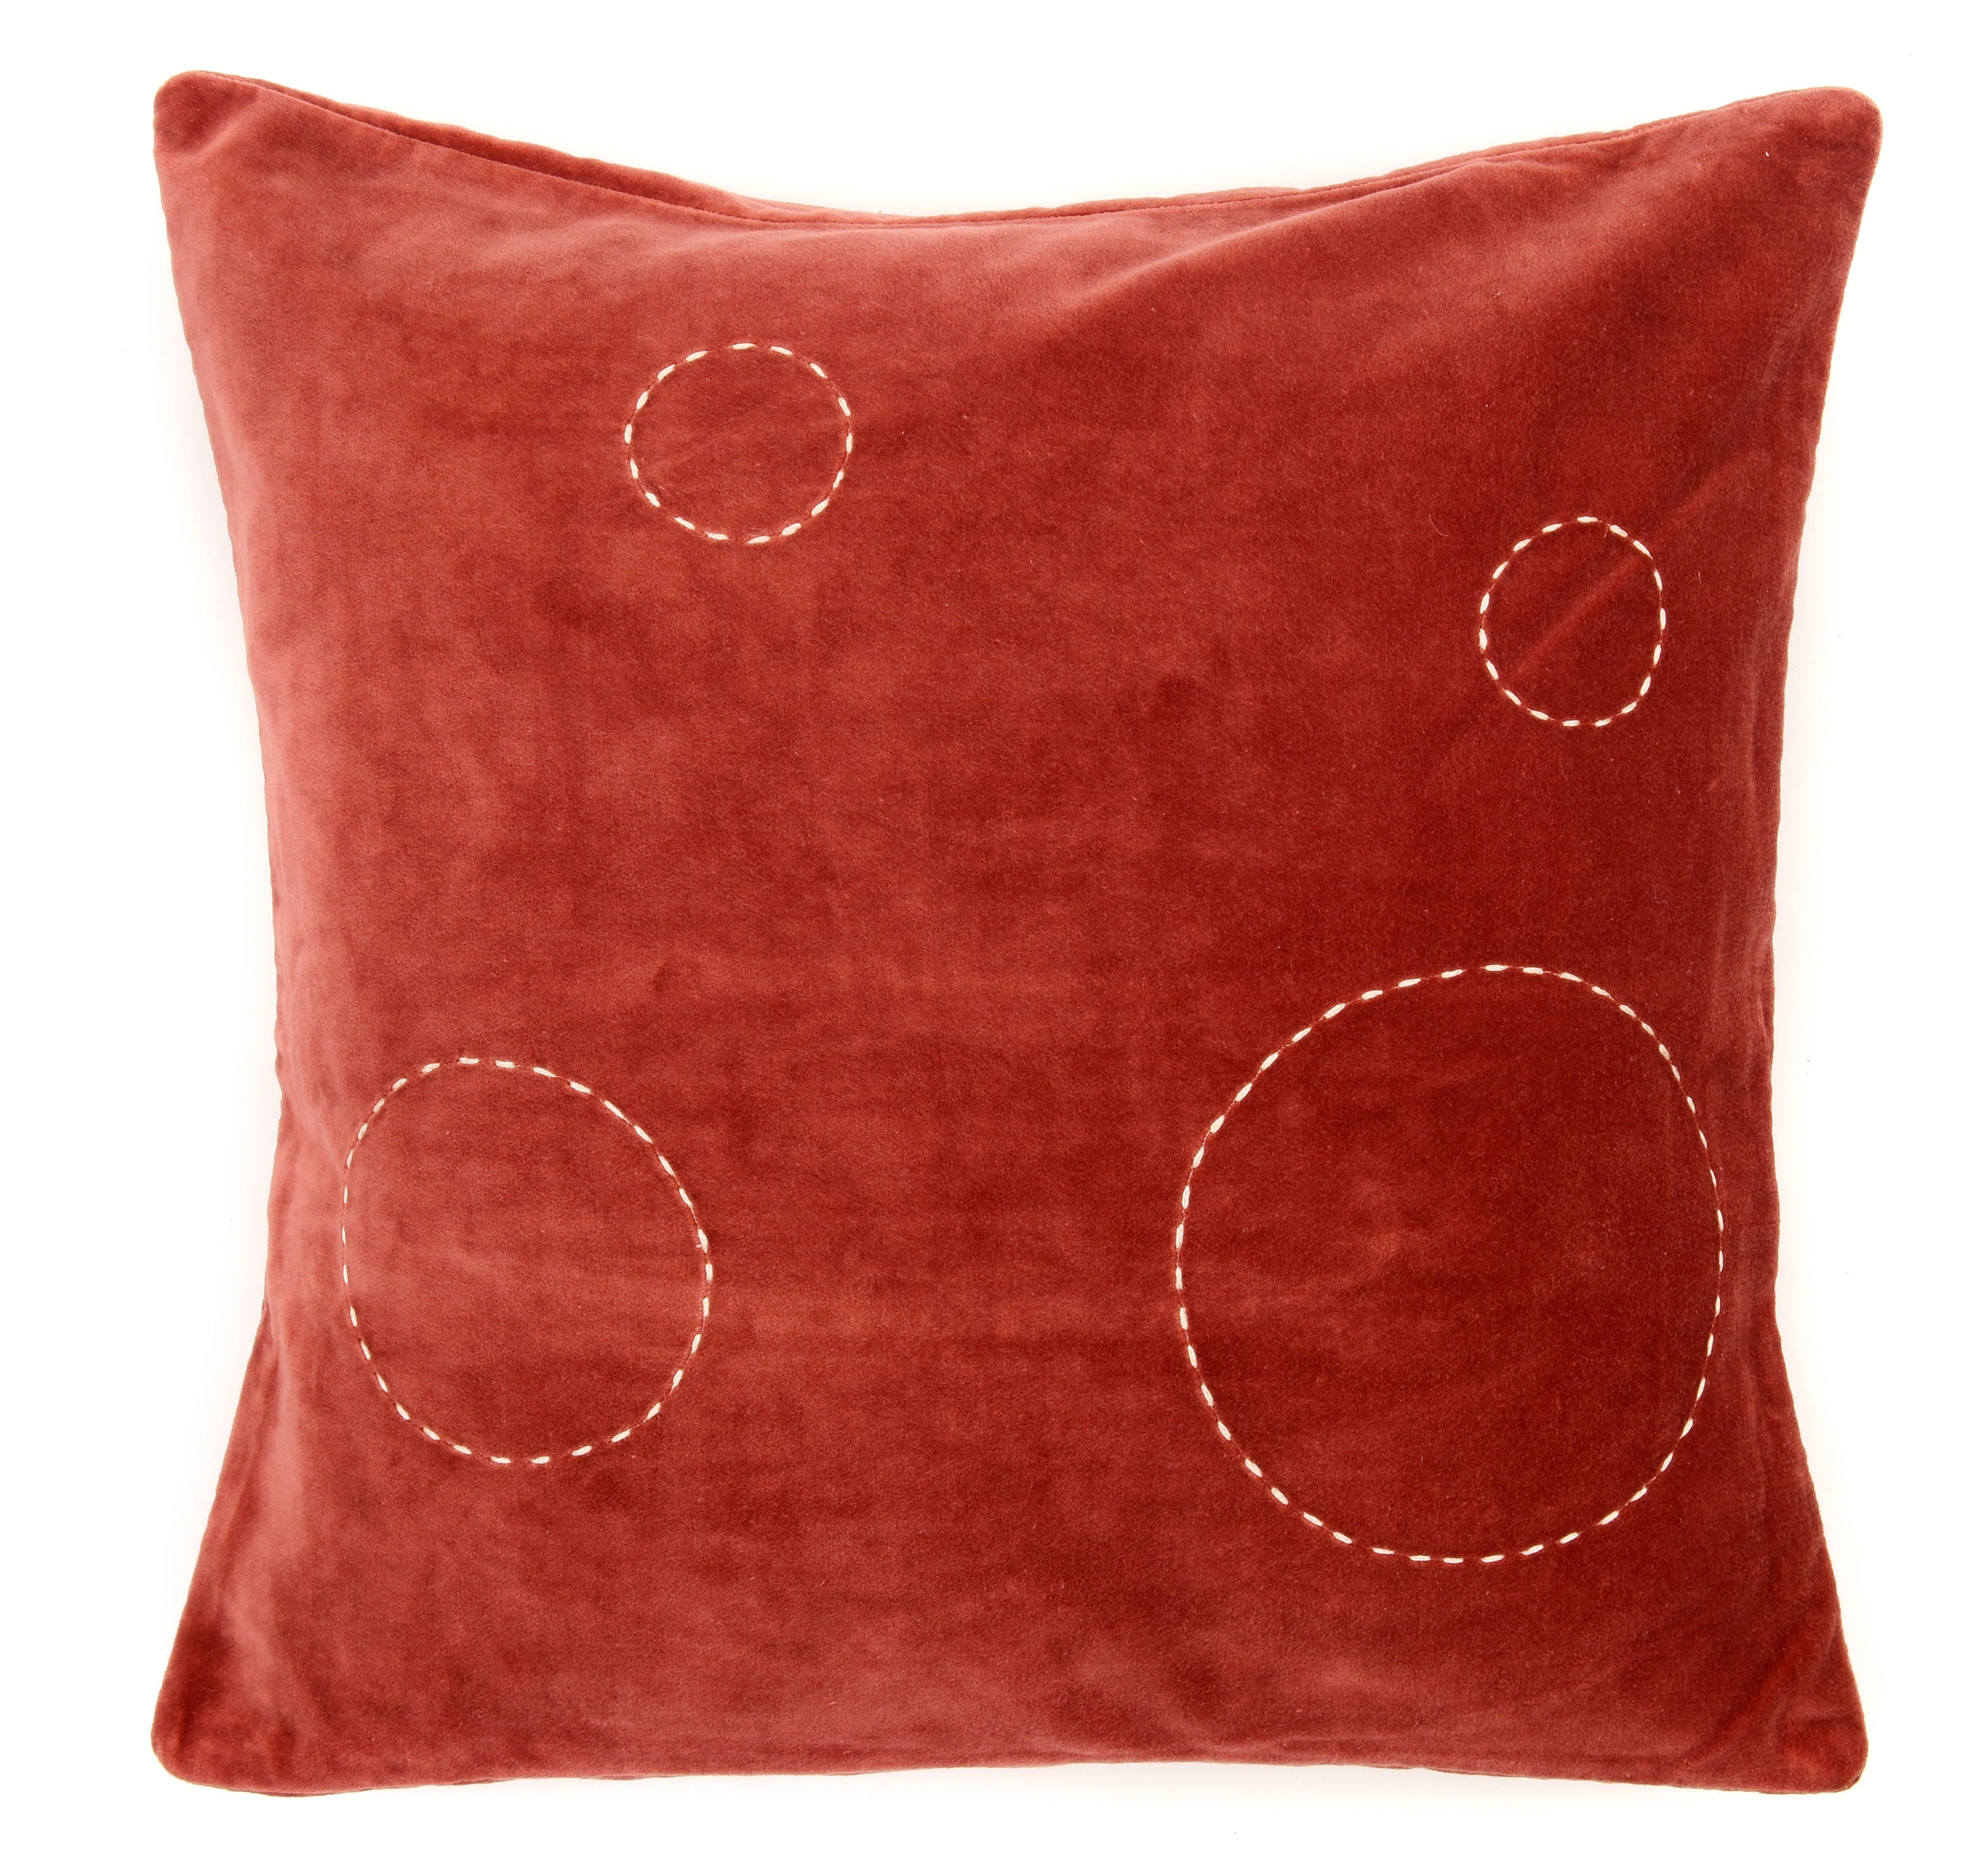 Pie in the Sky Velvet Cushion Cover Set of 2